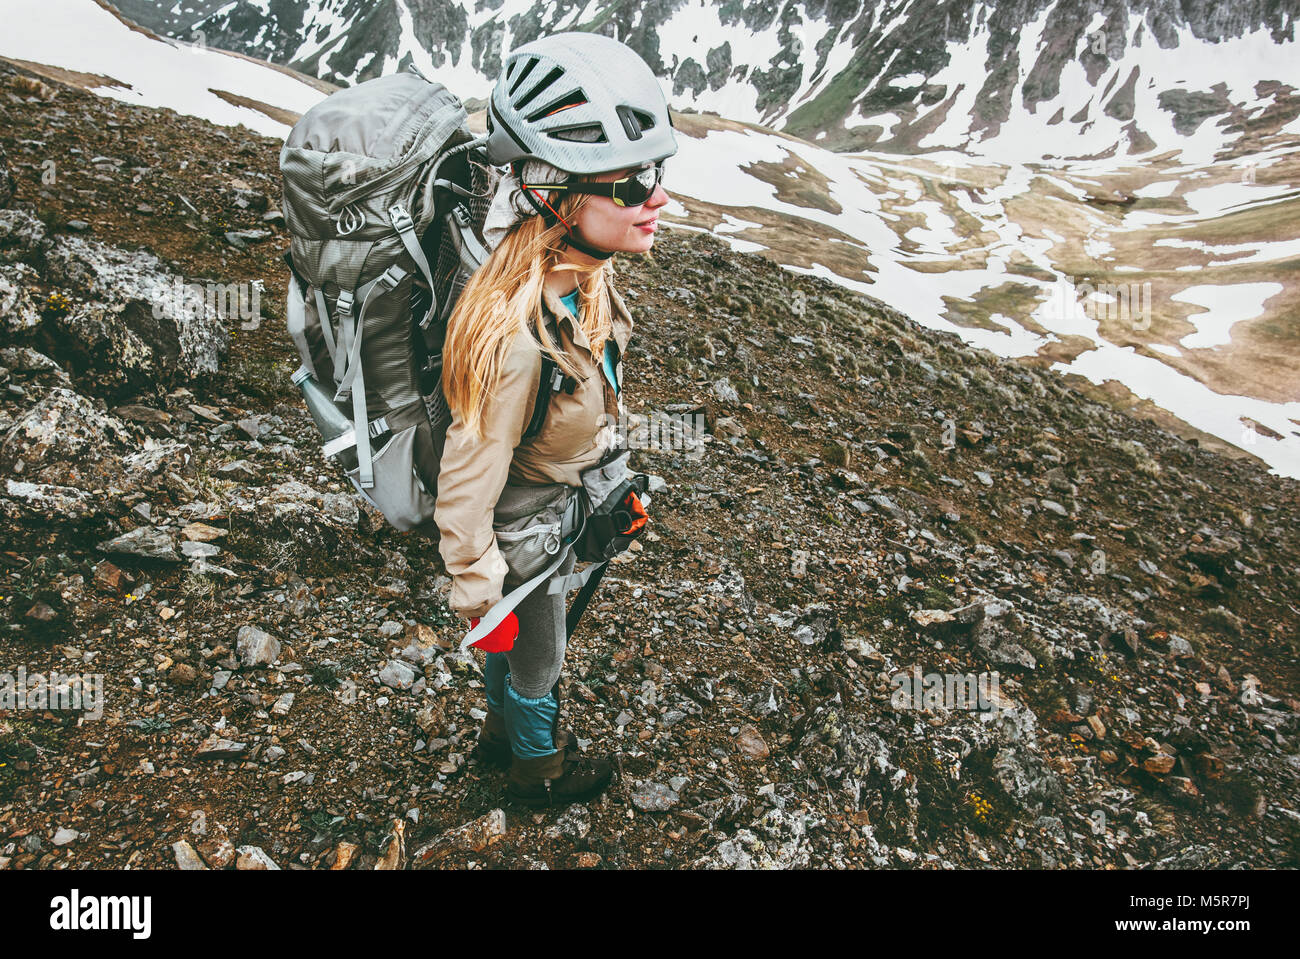 Jeune femme avec sac à dos escalade en montagne Billet de vie sain adventure concept active summer vacations Photo Stock